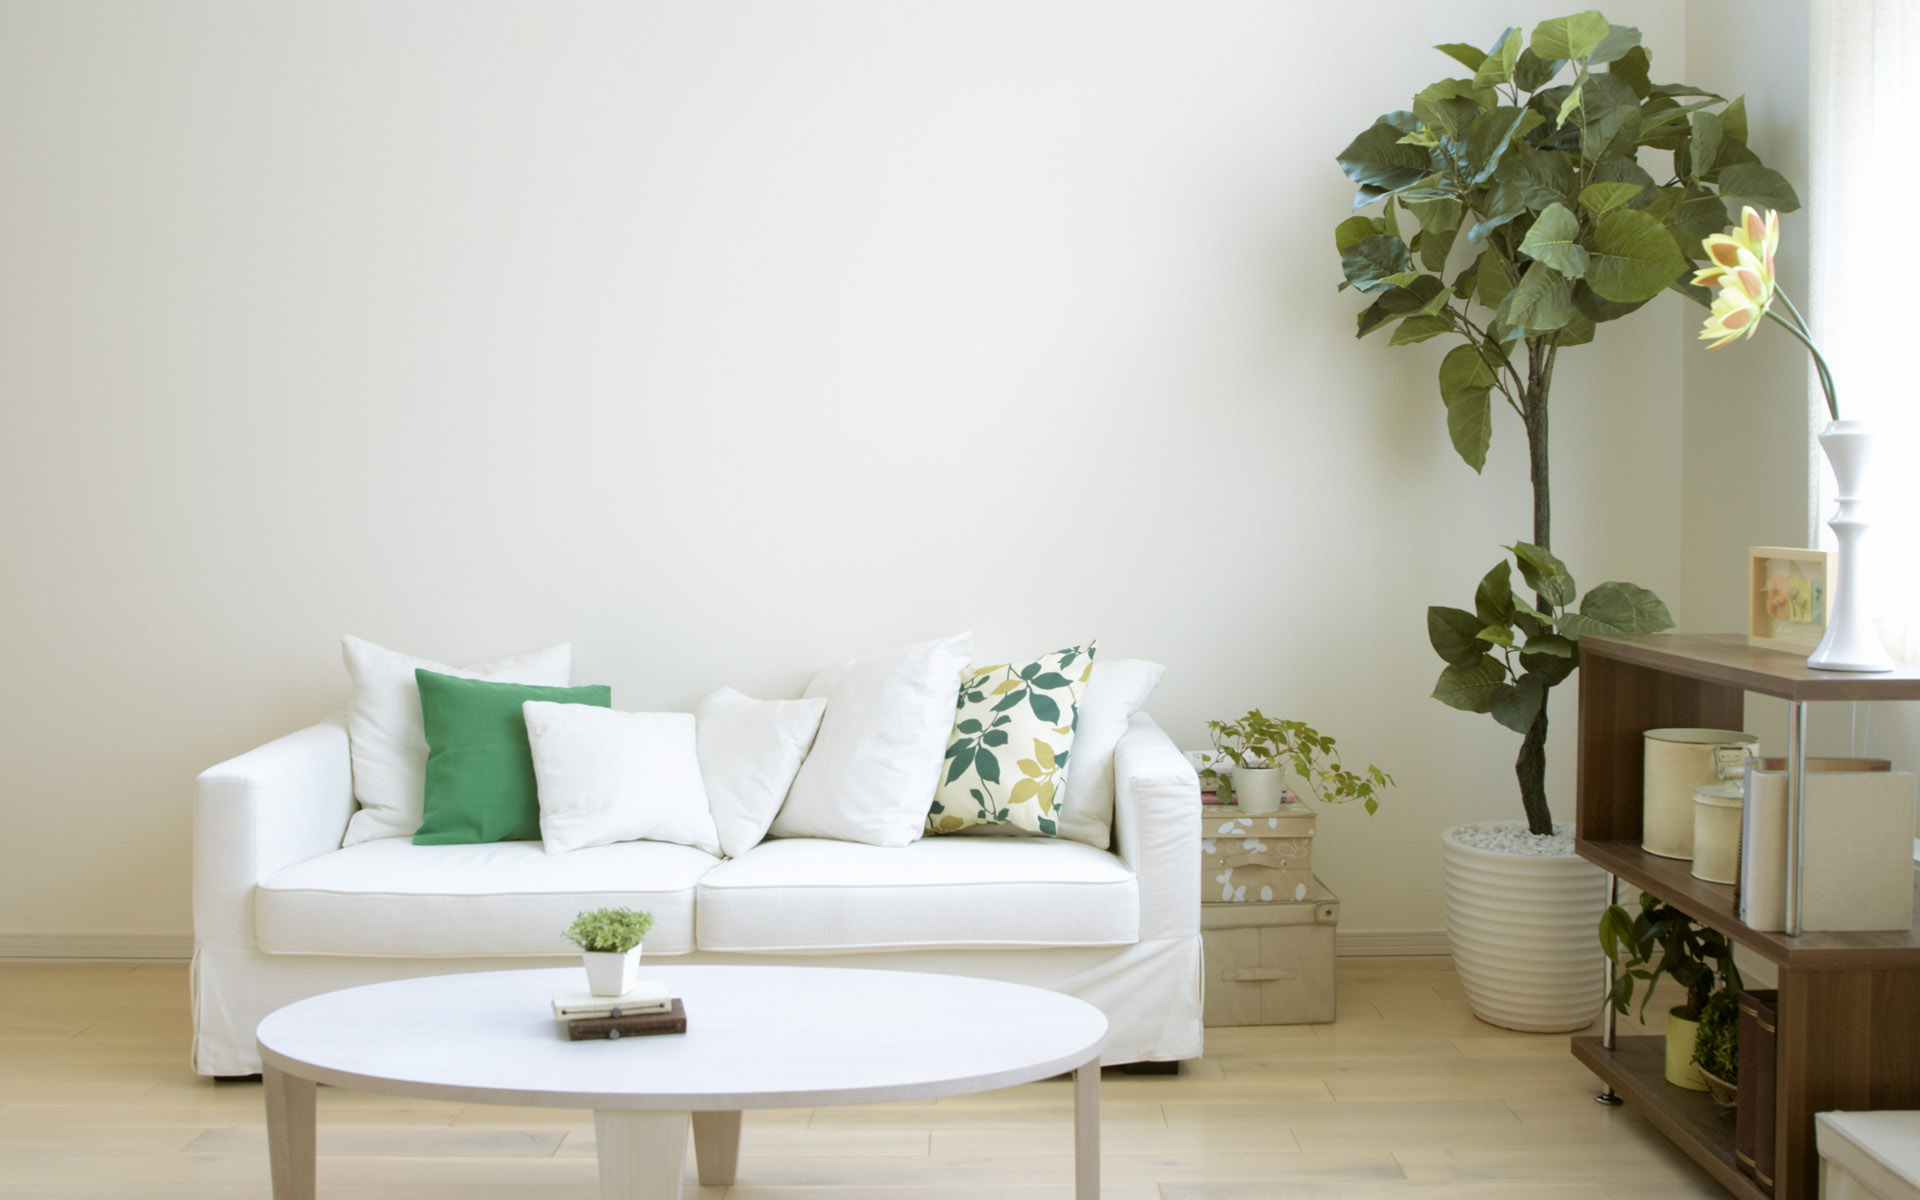 Free download wallpaper living room wallpaper hd pictures ...